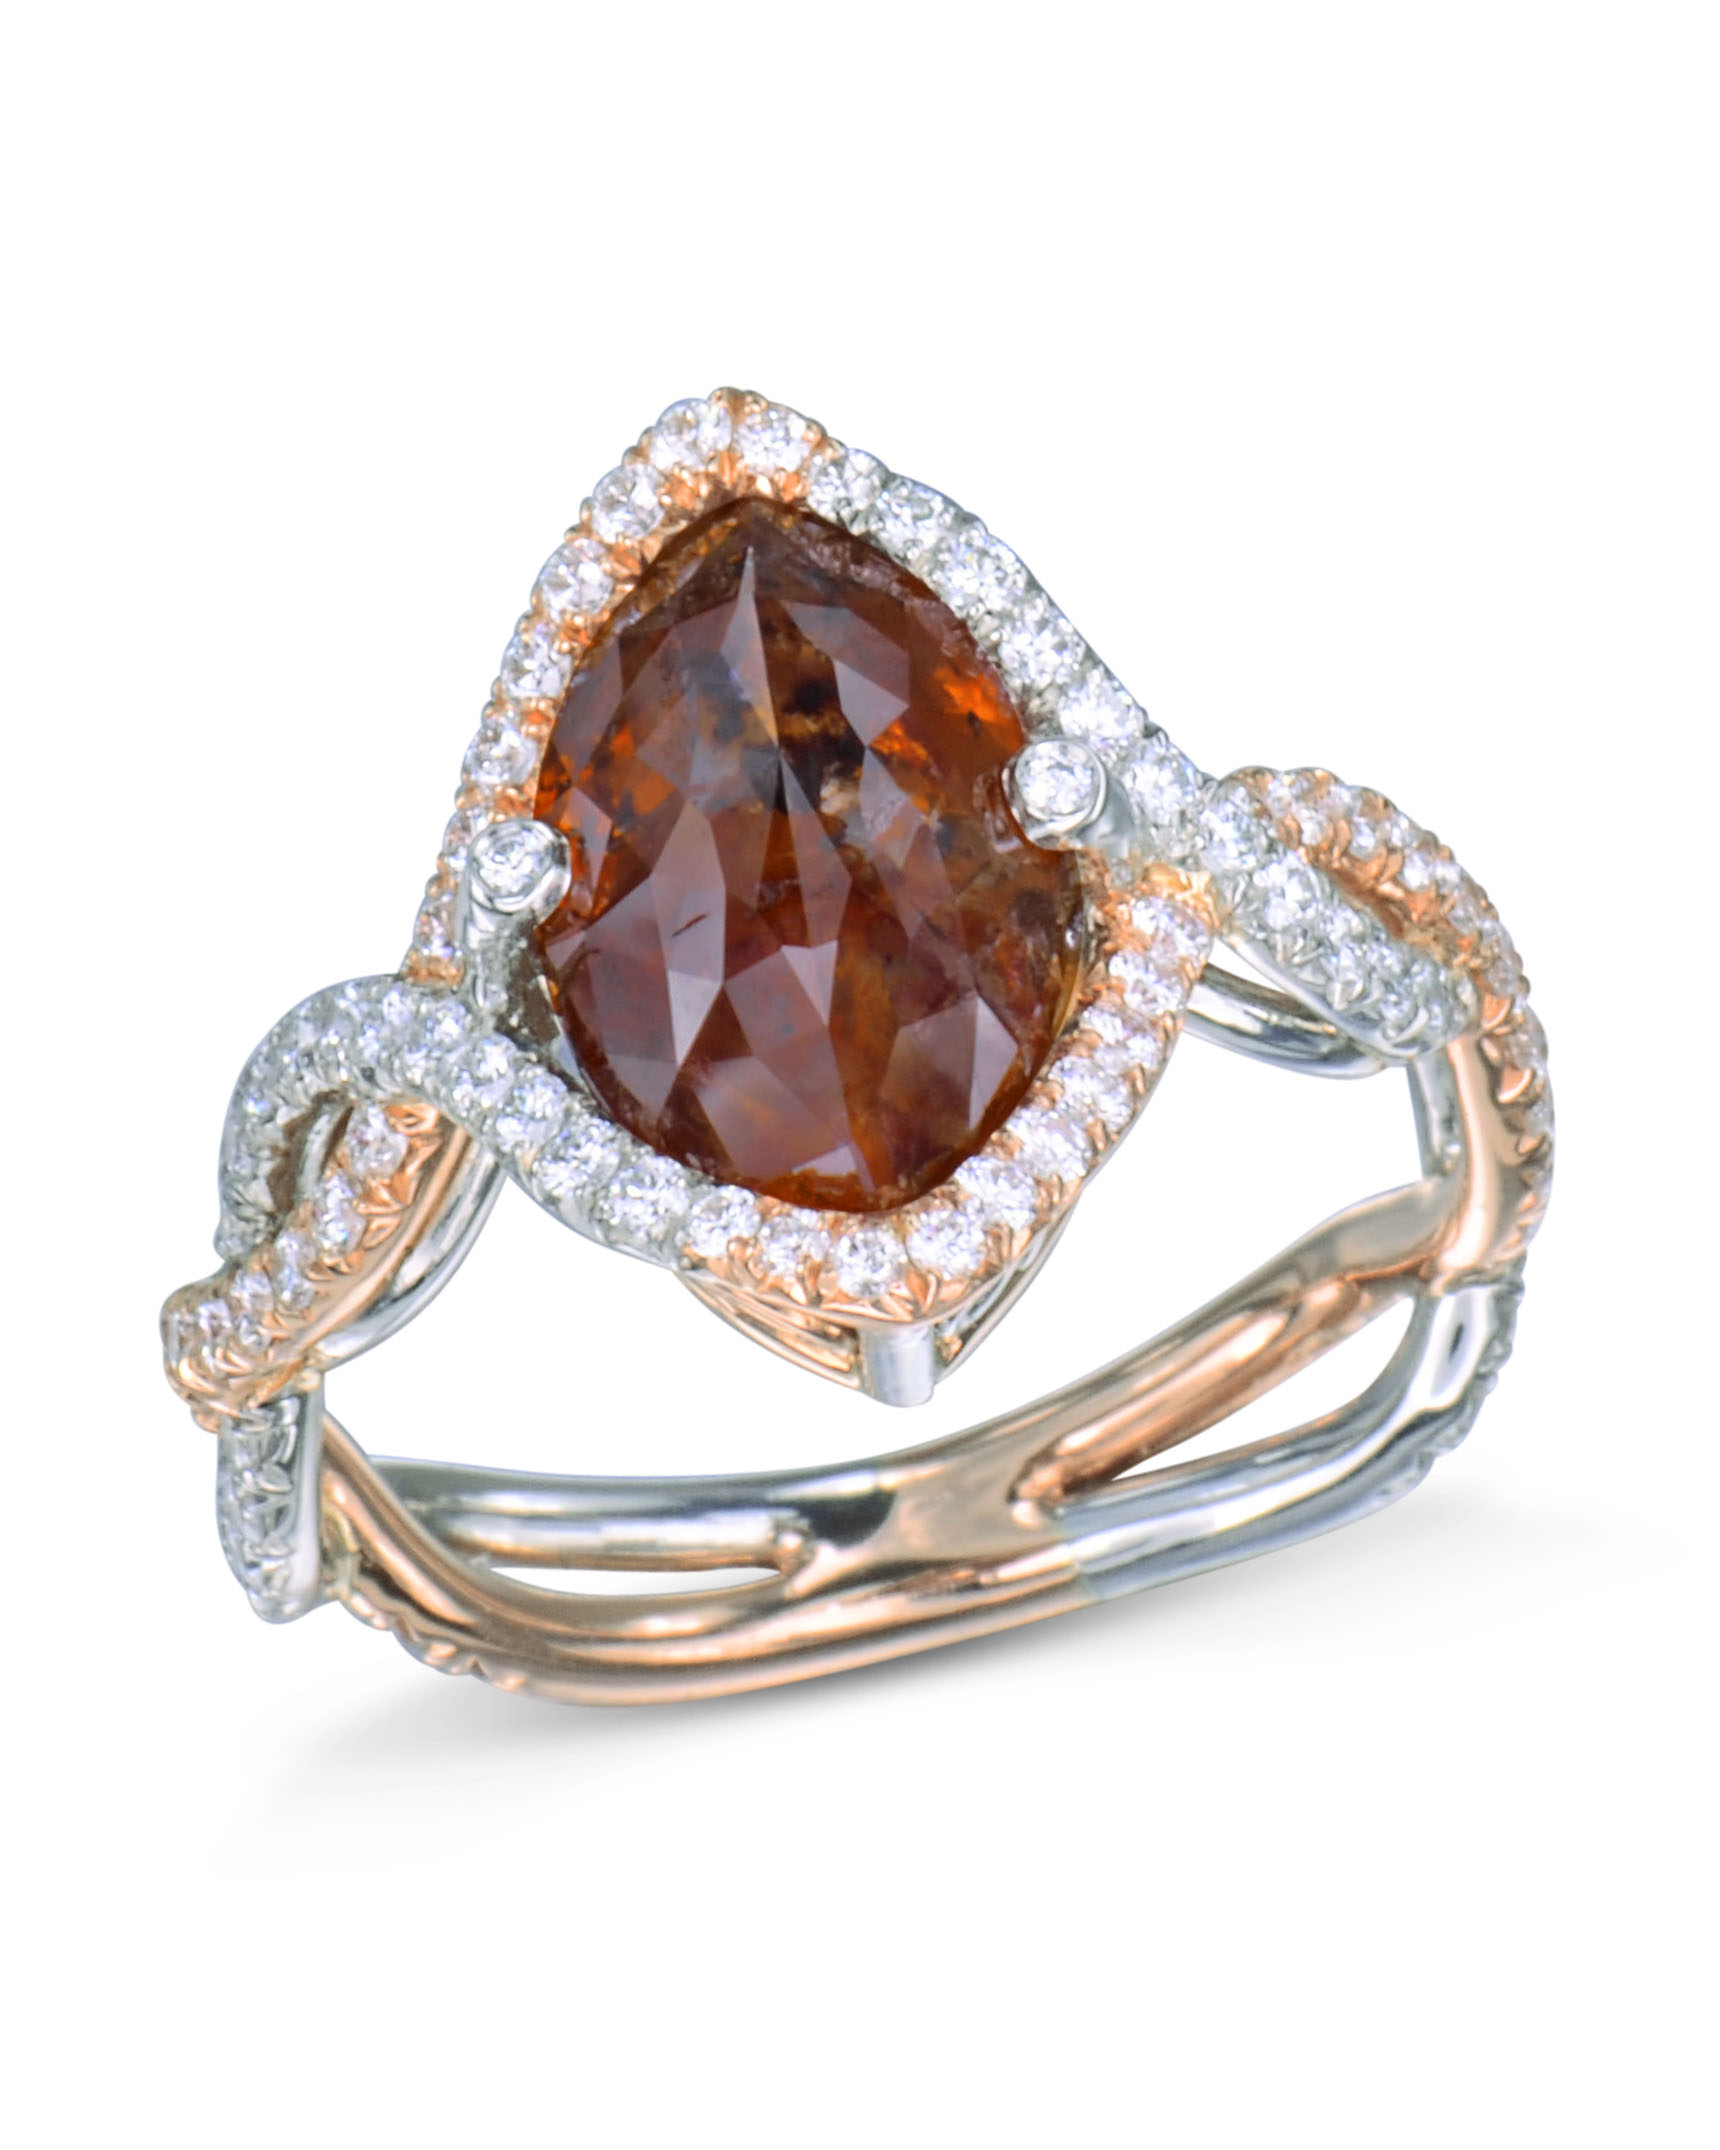 jeweller marquise band laings image and diamond marq gemstone ring platinum cut iconic